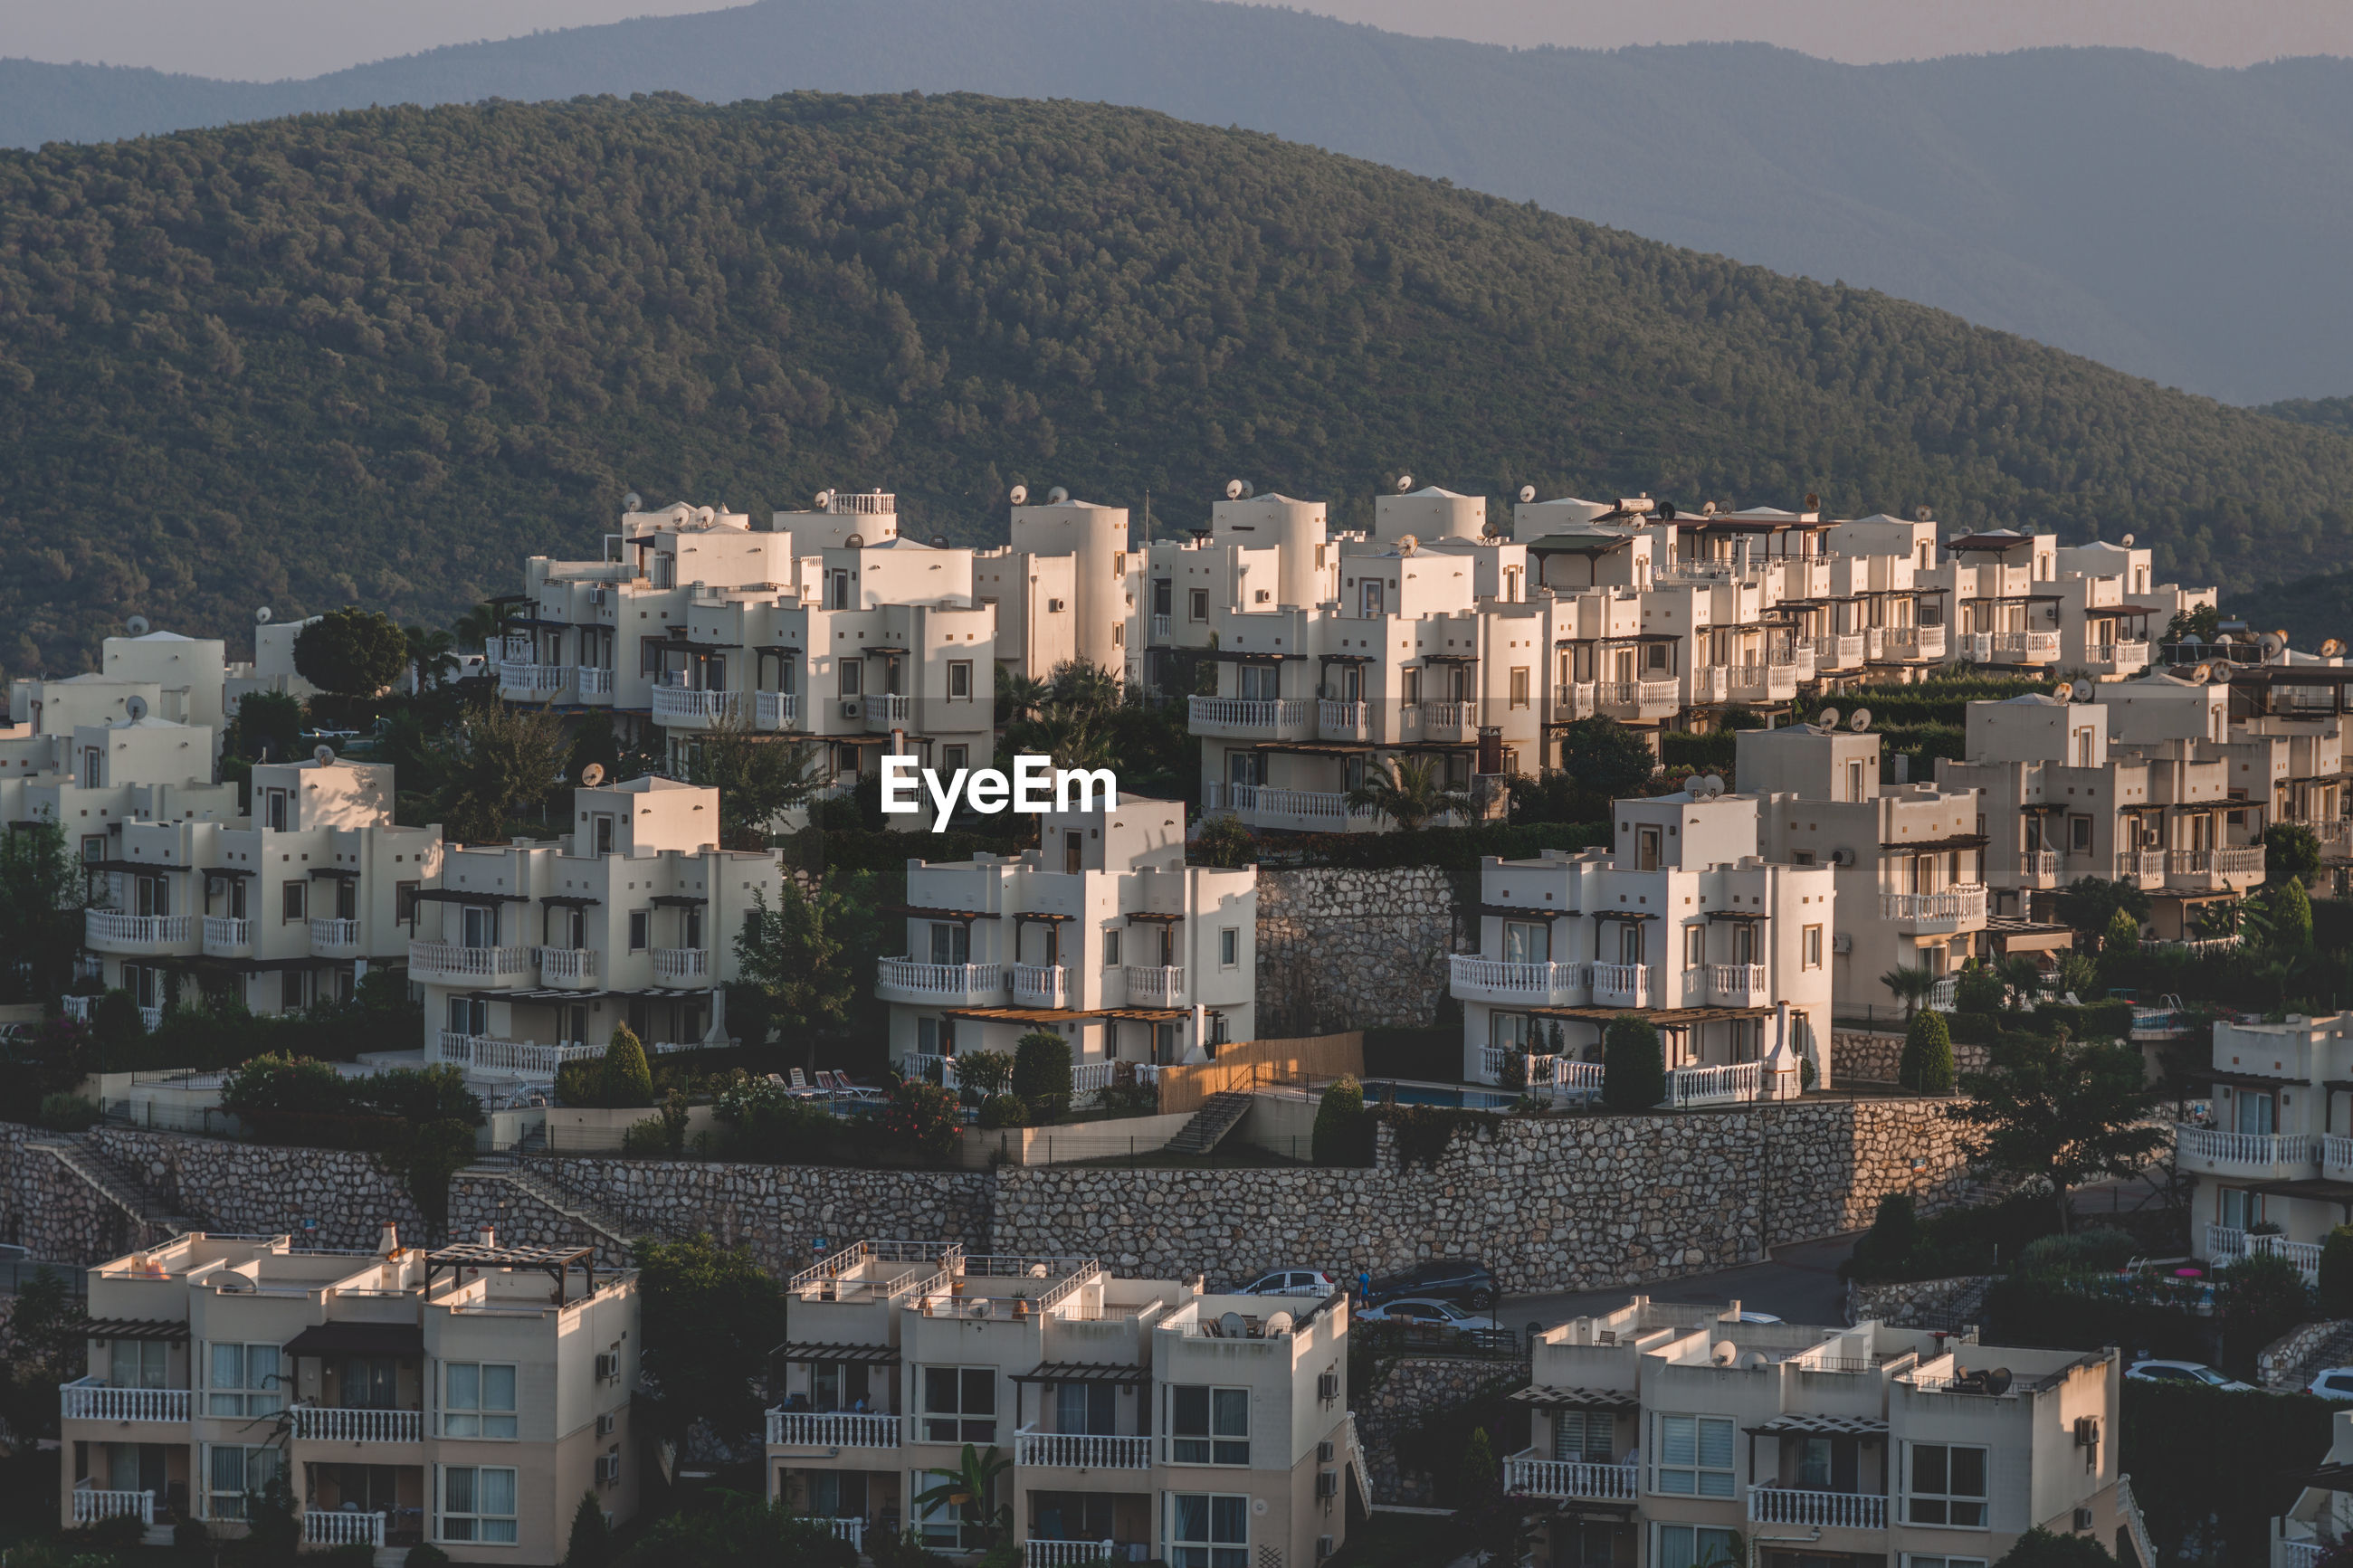 Bodrum, turkey 21st august 2019 summer houses on the hill. small cottage city in western turkey.